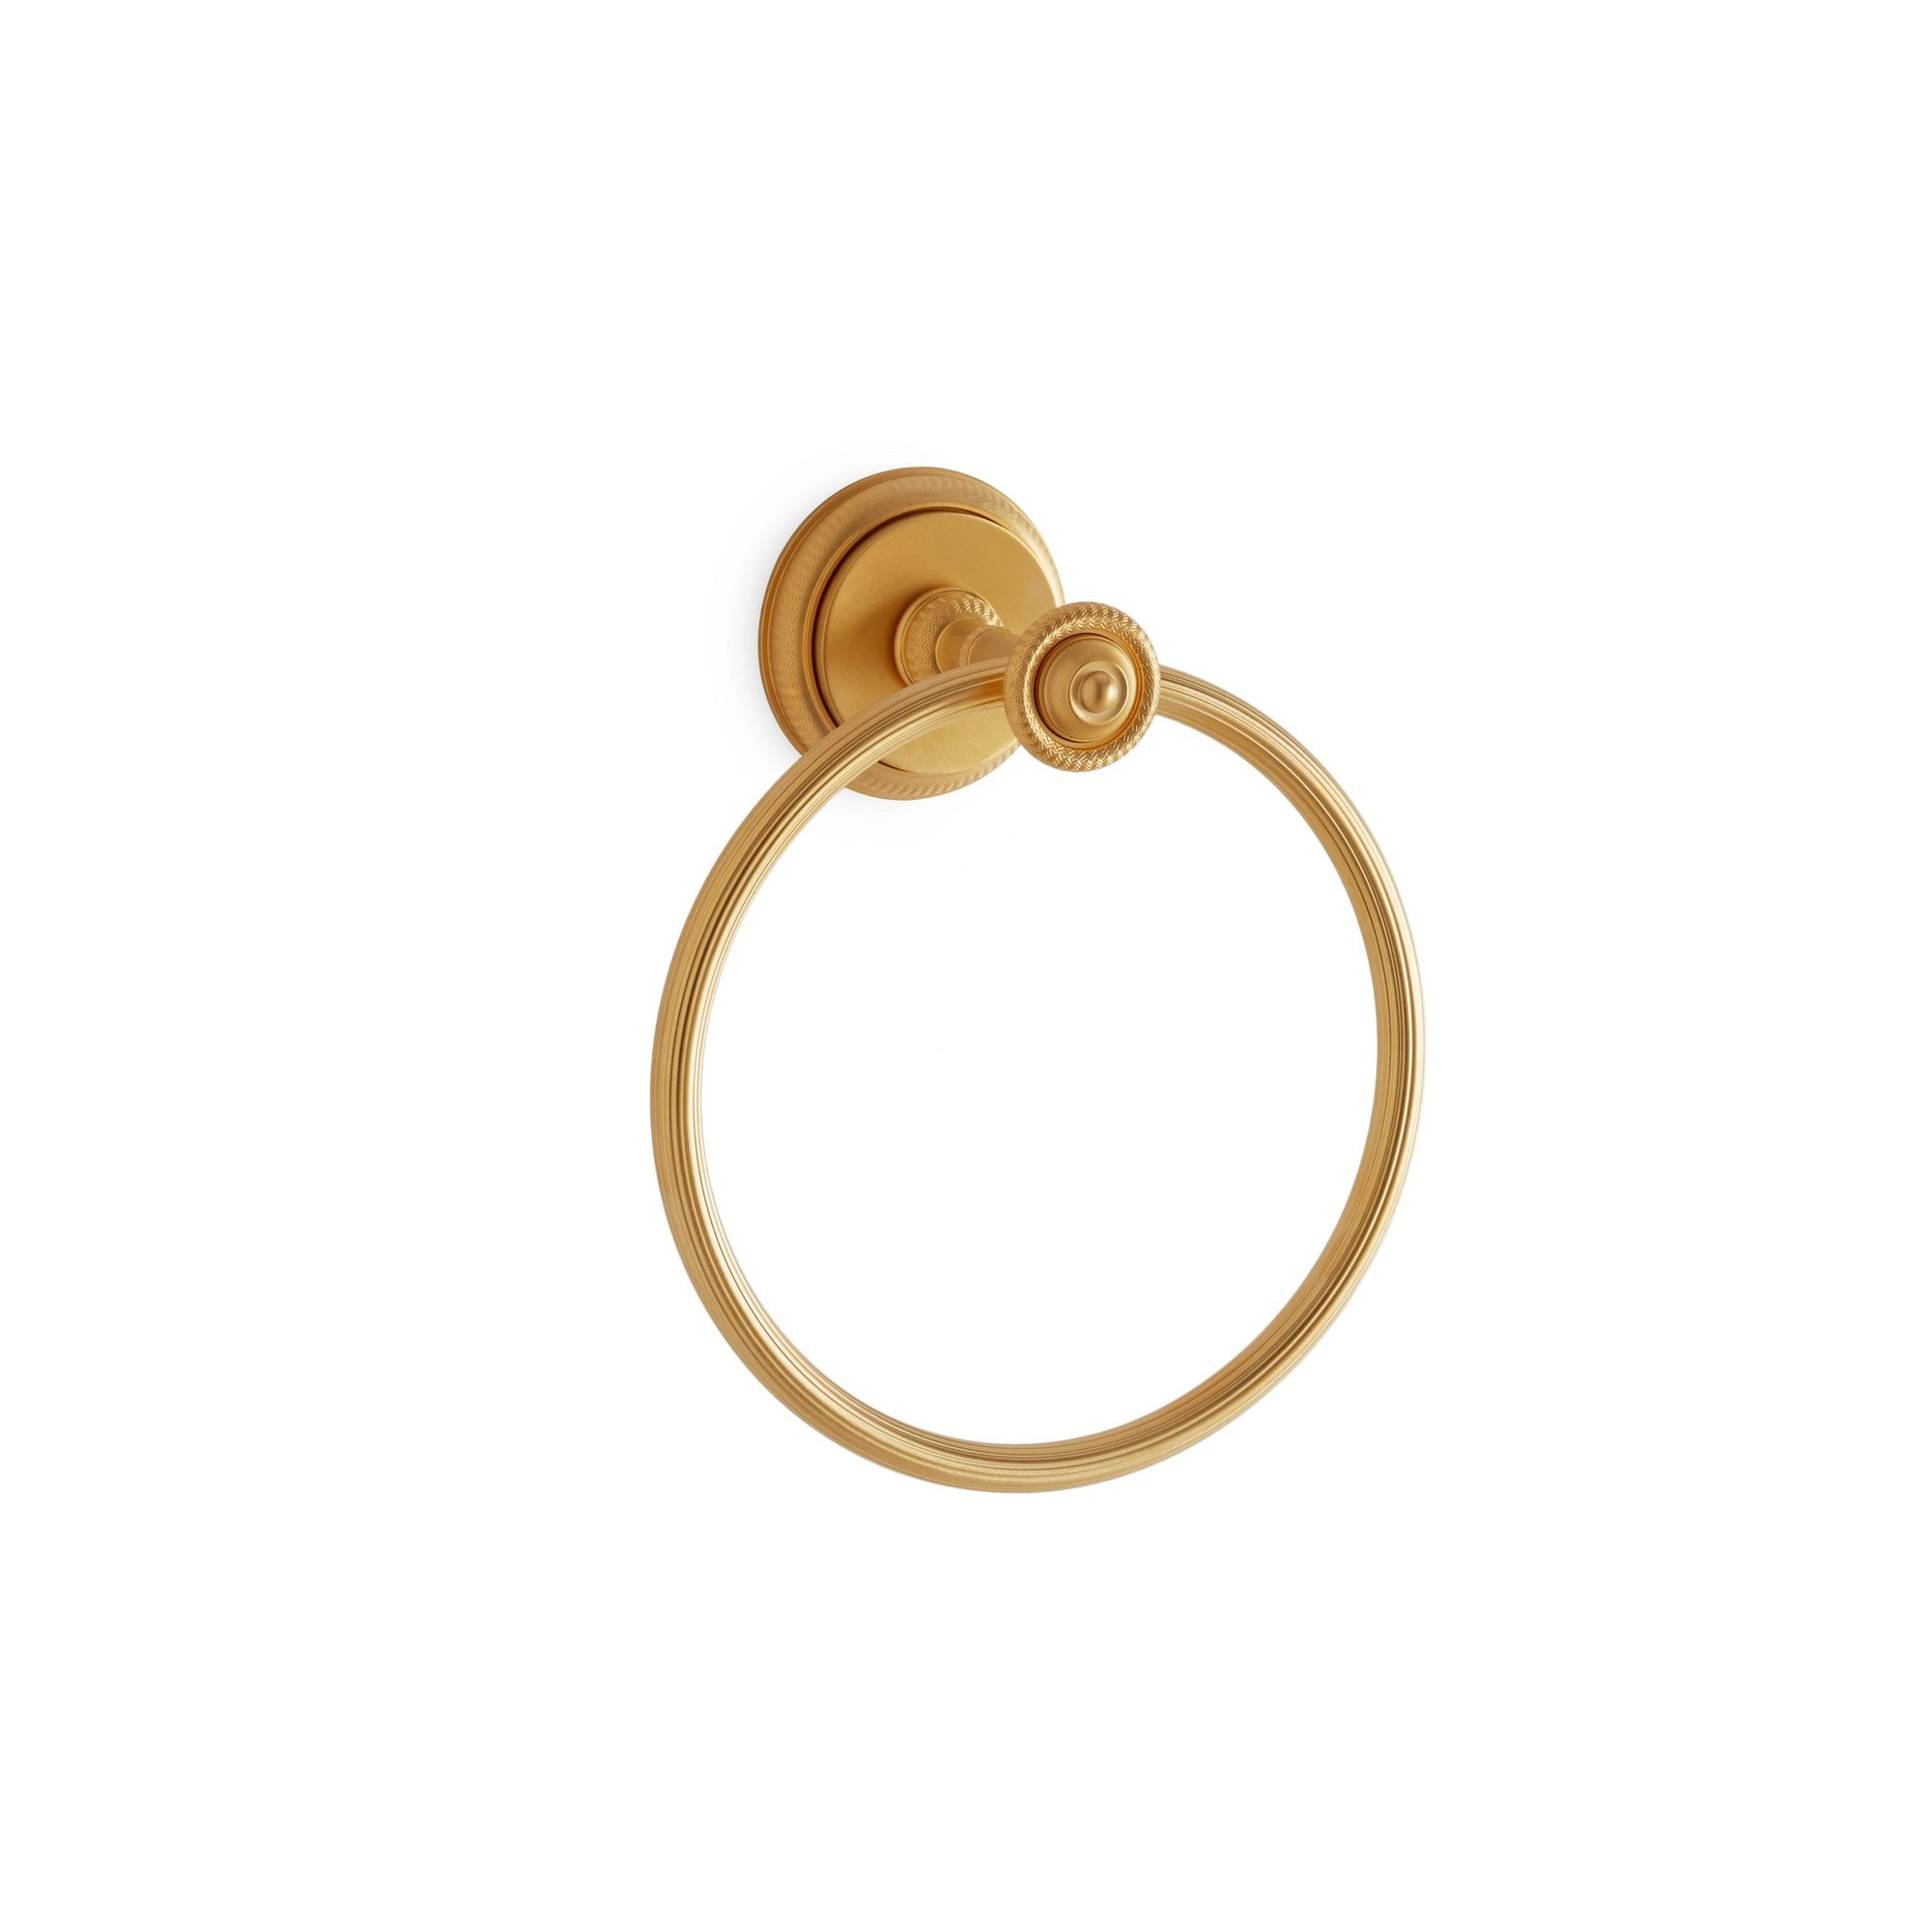 3442-MLIN-GP Sherle Wagner International Knurled Towel Ring with Metal insert in Gold Plate metal finish